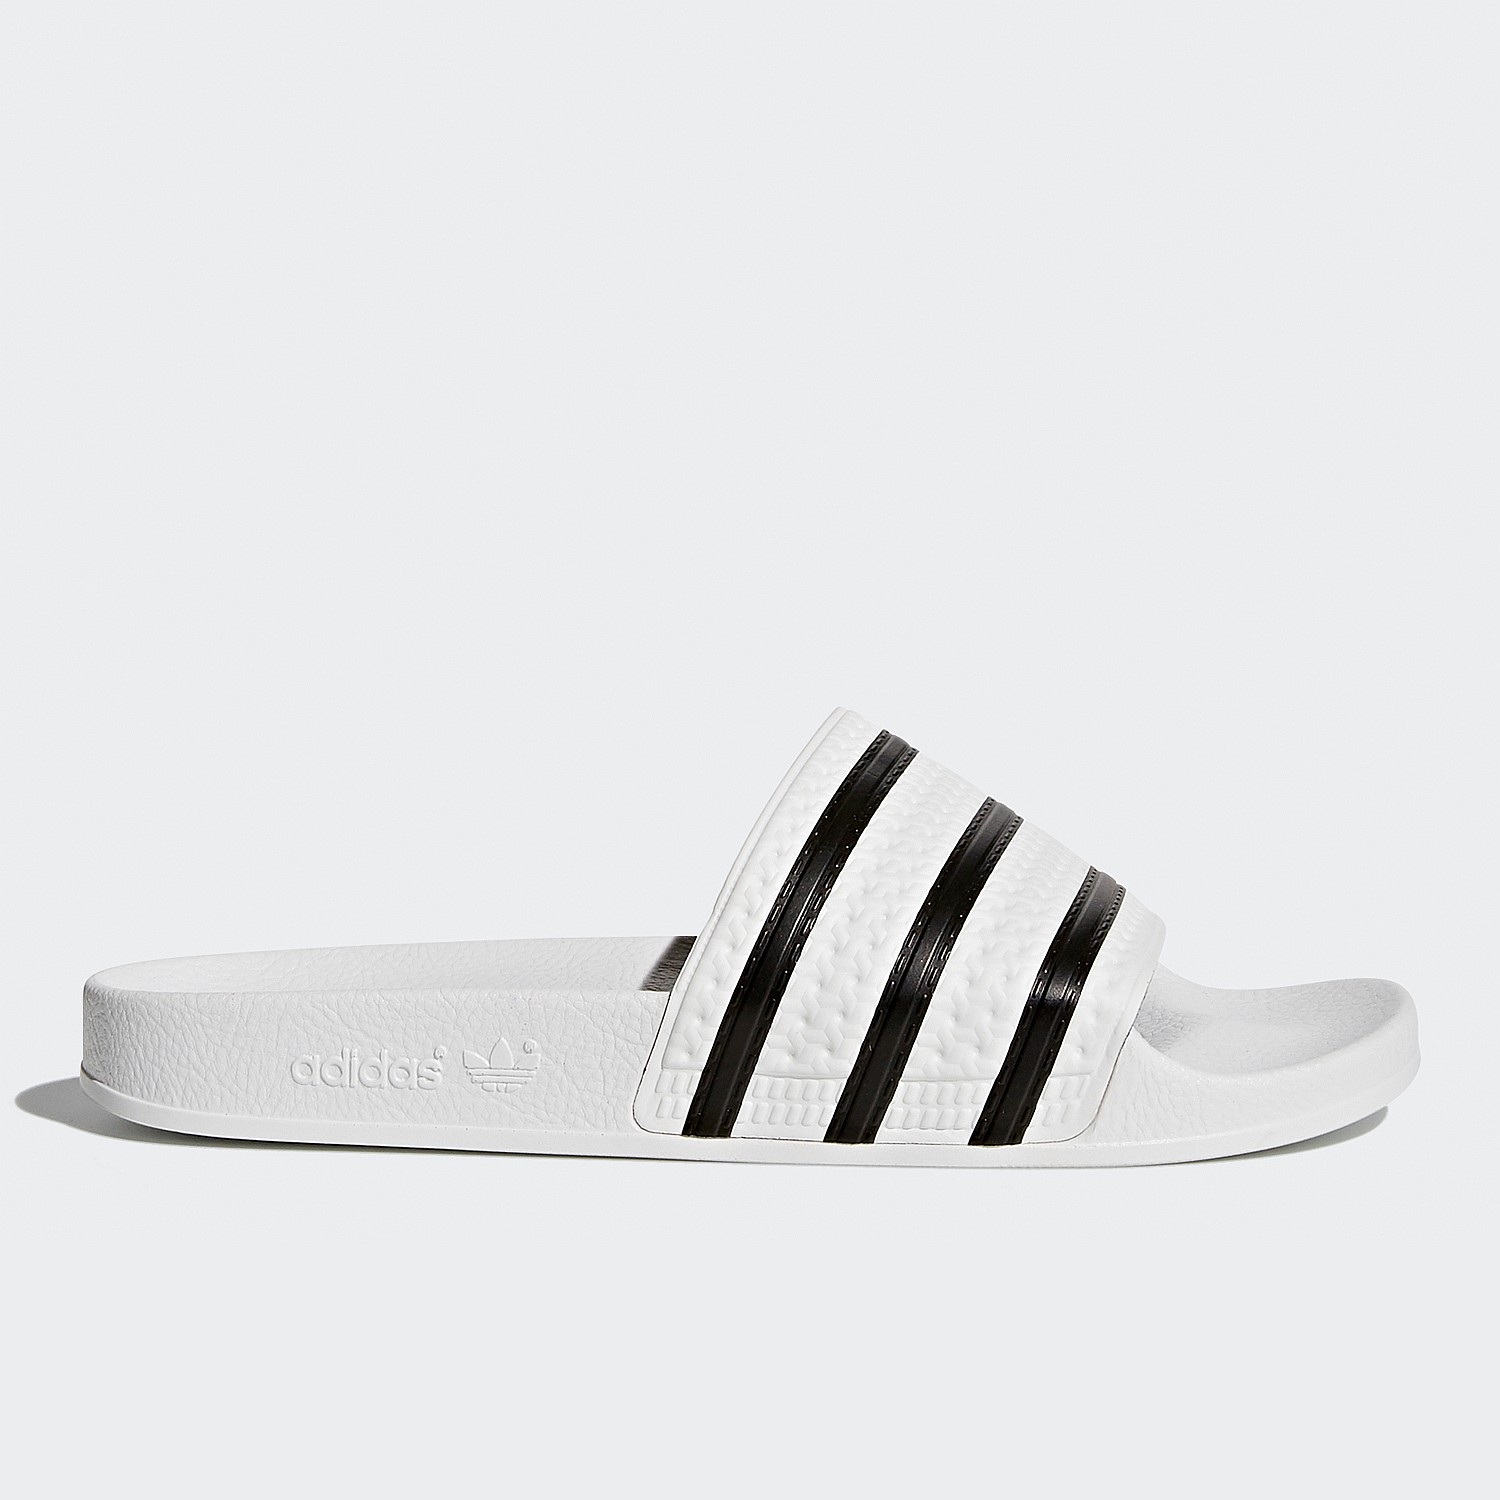 0e0715d820d18 Adilette Slides Unisex. Previous. Next. Adidas Originals